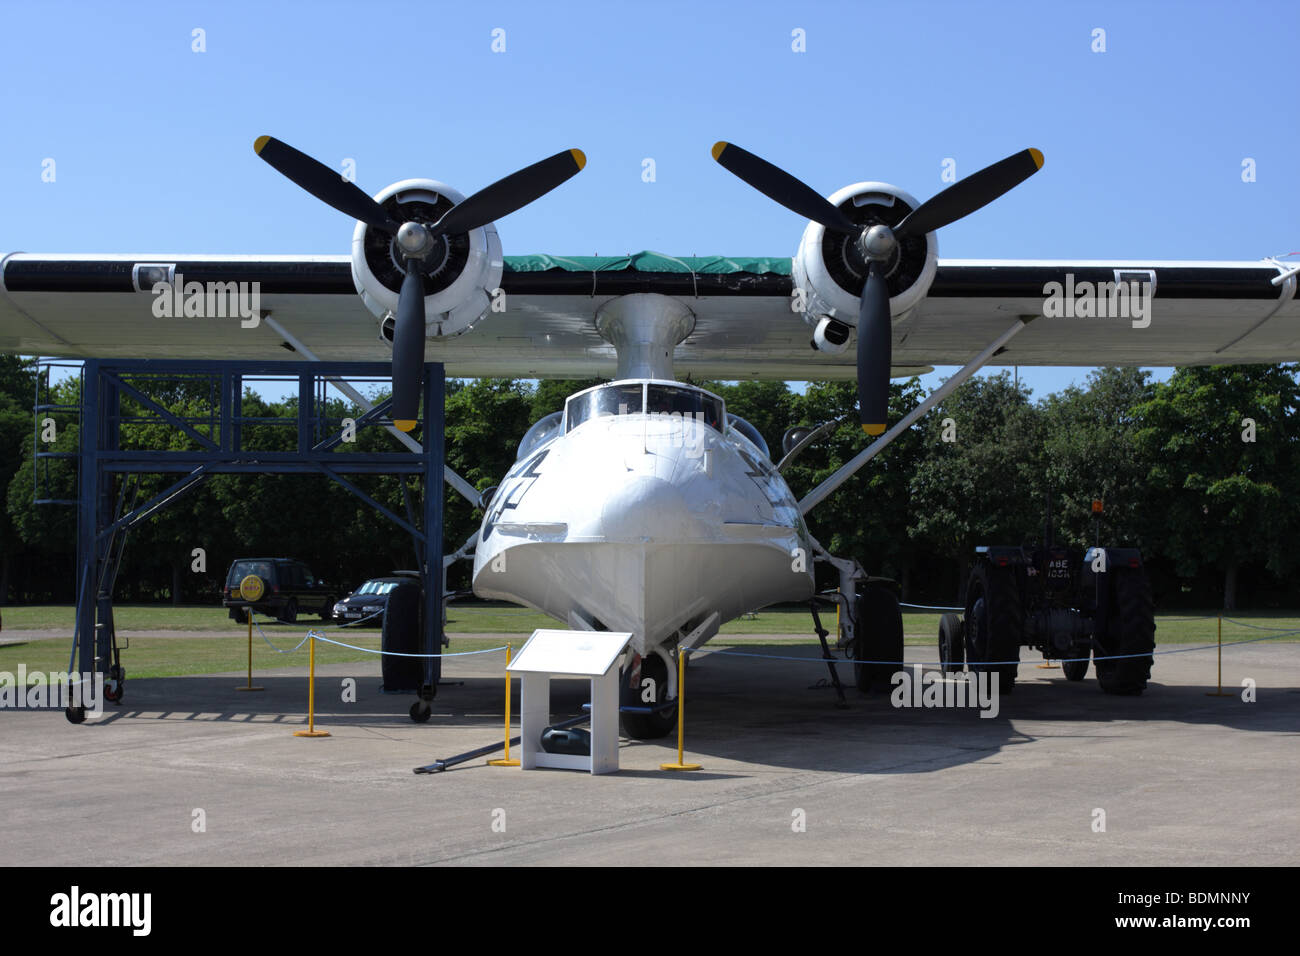 Full on cropped aspect of the Consolidated Catalina seaplane,currently on external display at Imperial War Museum - Stock Image